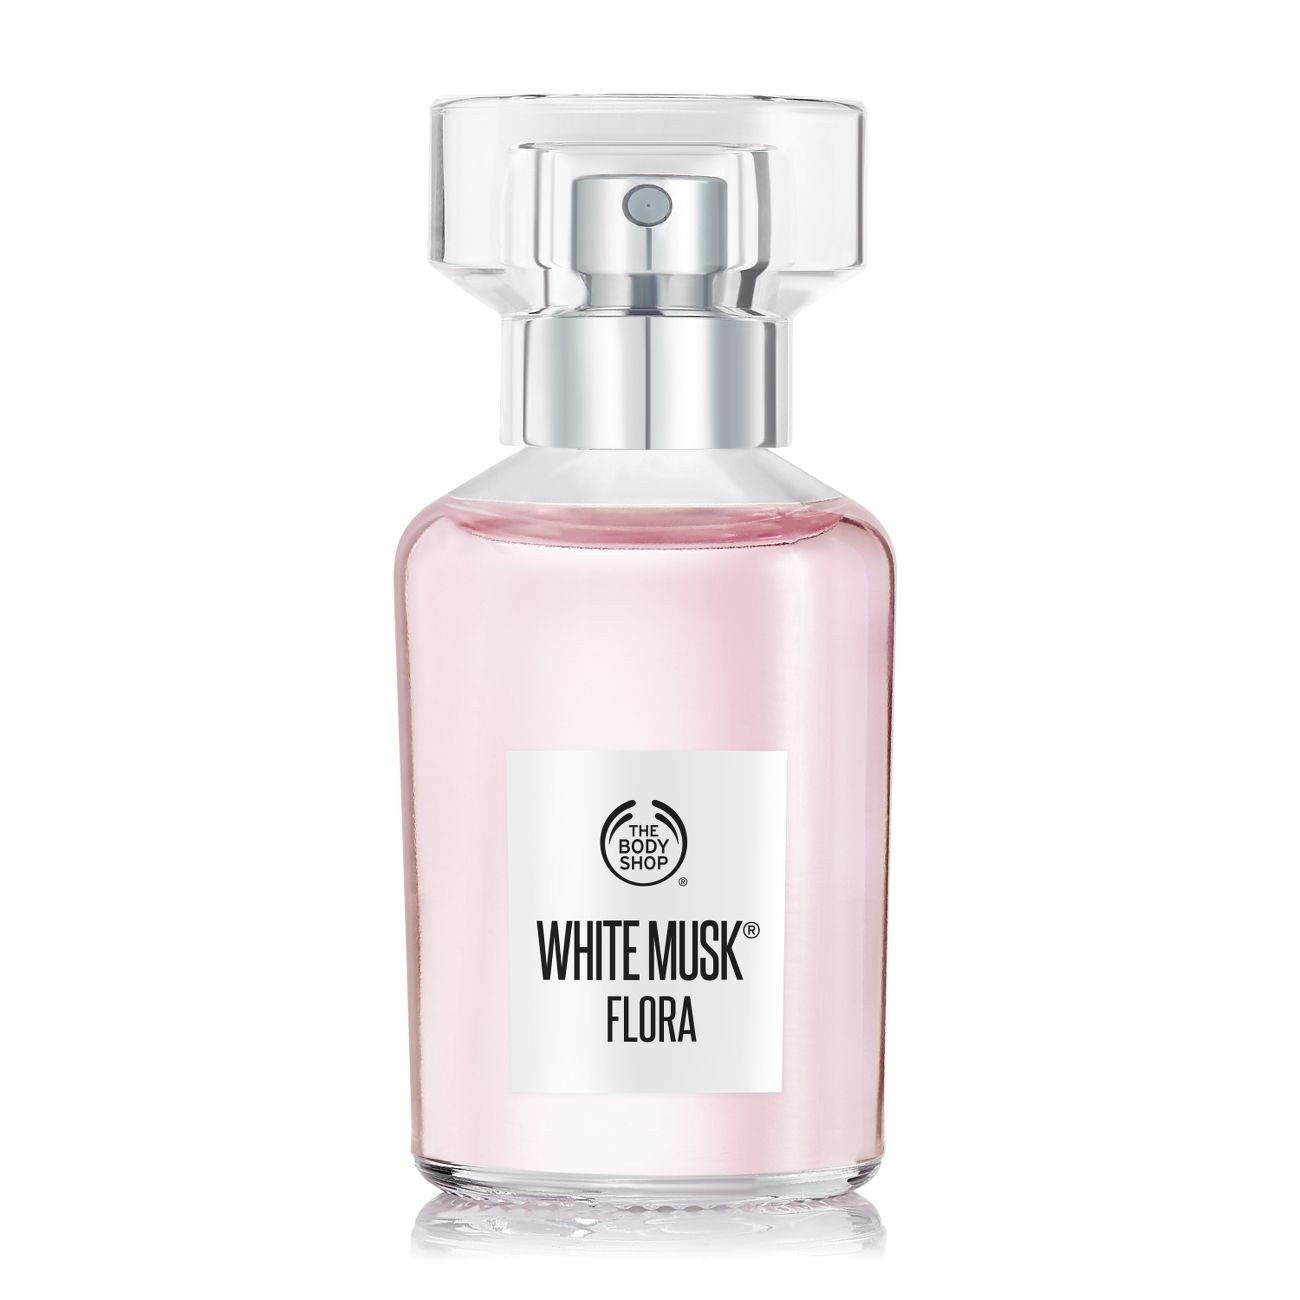 WHITE MUSK® FLORA EAU DE TOILETTE  30 ML